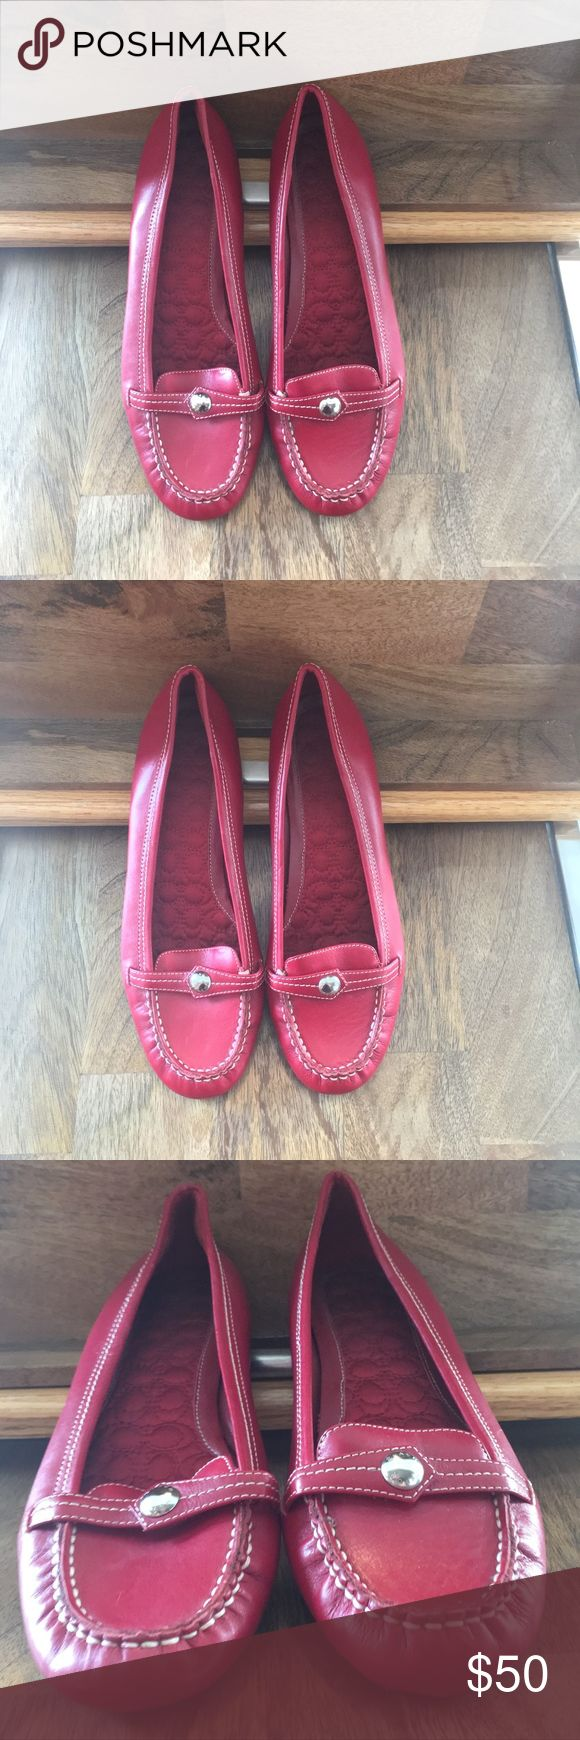 Red Coach flat shoes size 8.5 NWOT Brand New (W/O Tags) pair of COACH red flat slip on penny loafer women shoes. They are size 8.5 - which was just a to small for me. These are classic, timeless shoes! Coach Shoes Flats & Loafers